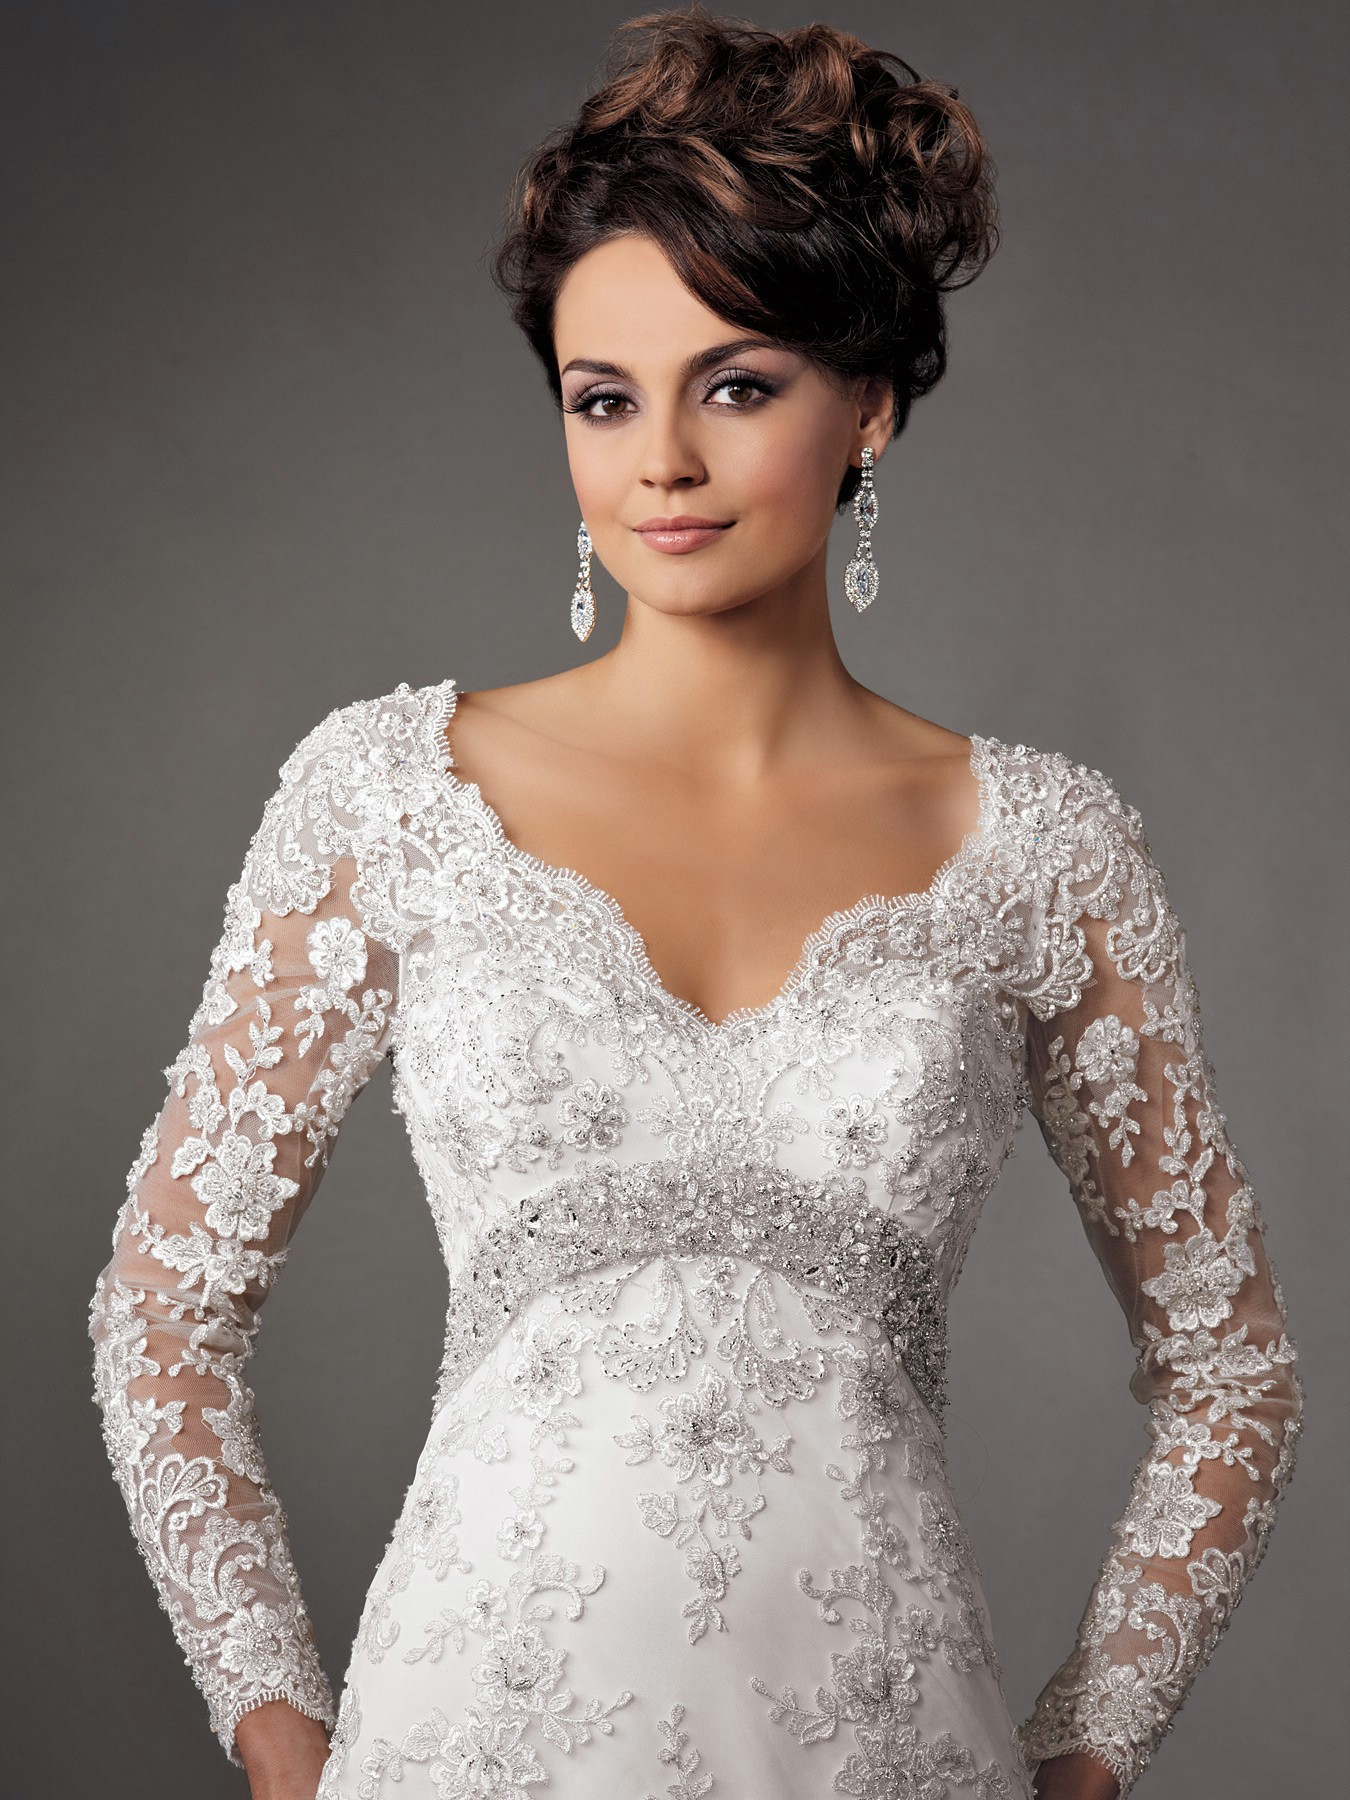 The elegance of fall lace wedding dresses with sleeves for Long sleeve dresses to wear to a wedding